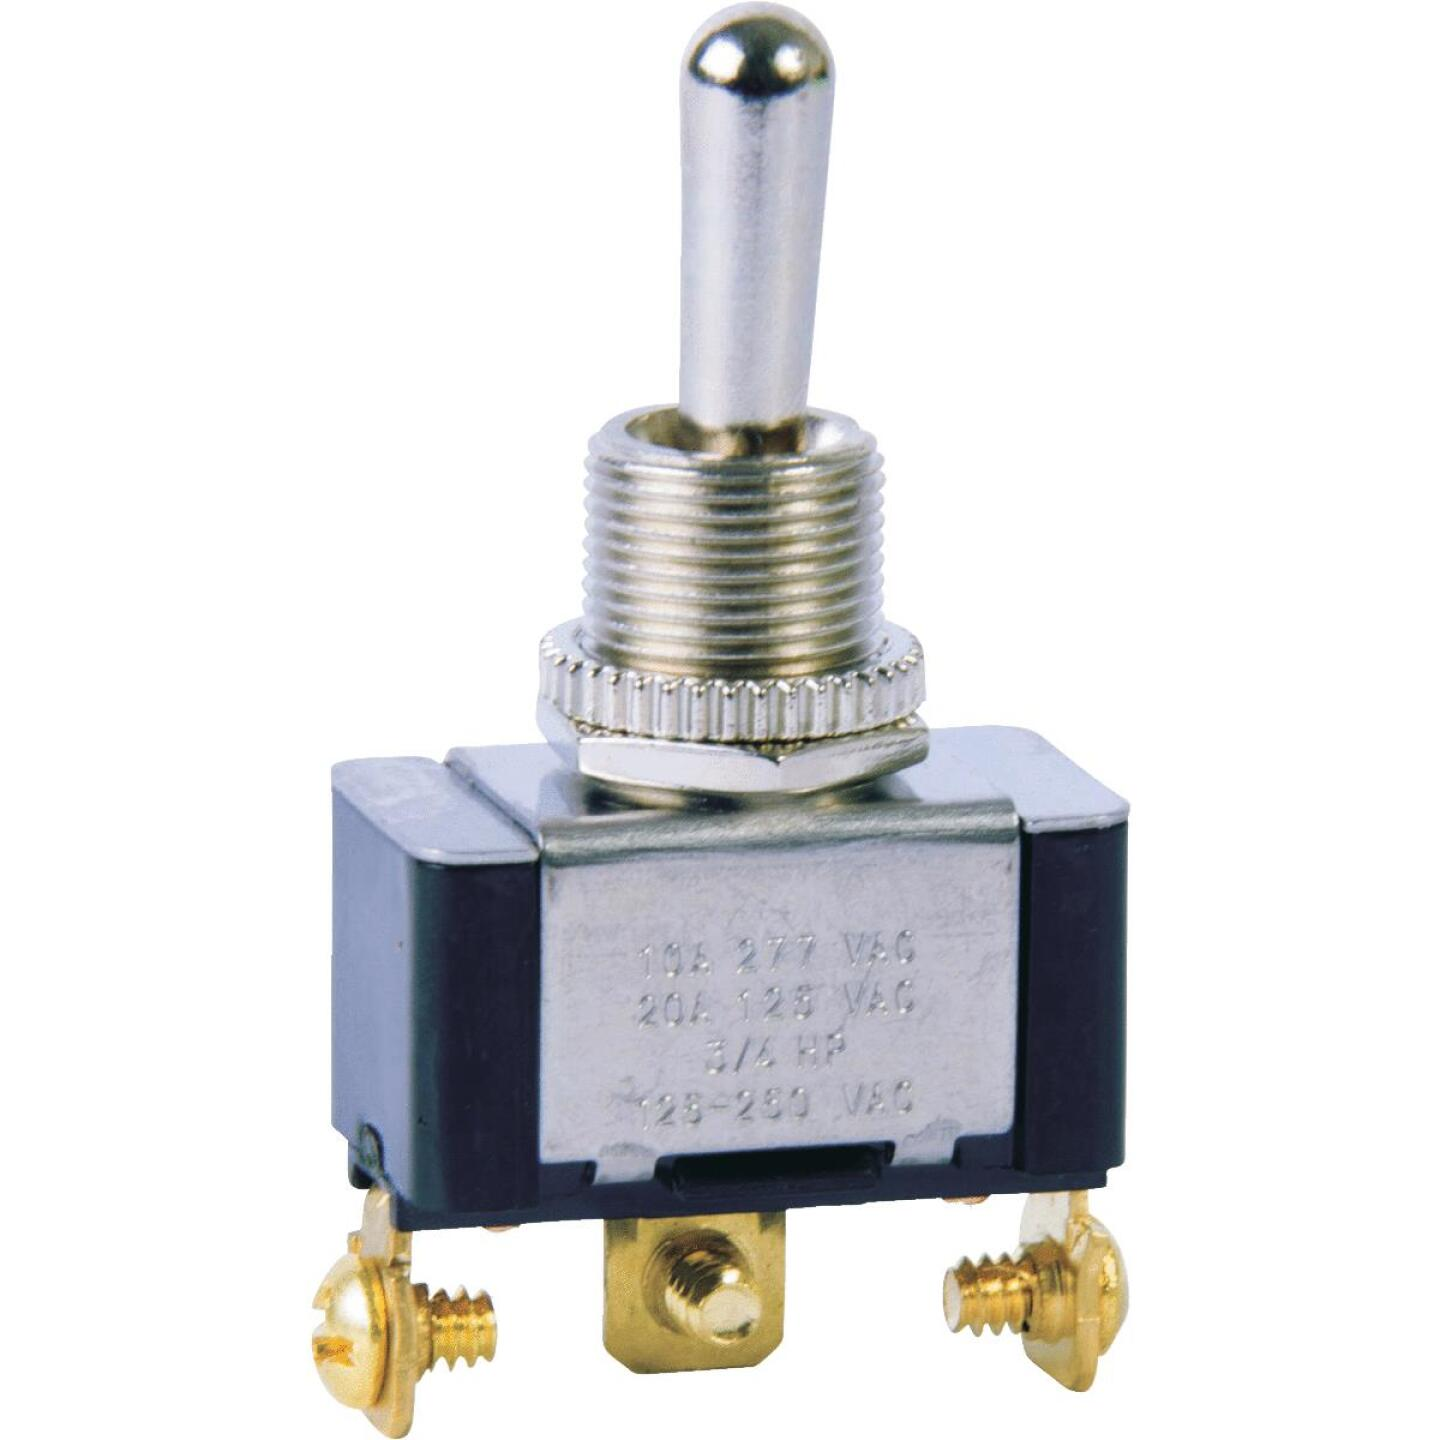 Gardner Bender Heavy-Duty SPDT 3-Screw Double ThrowToggle Switch Image 1